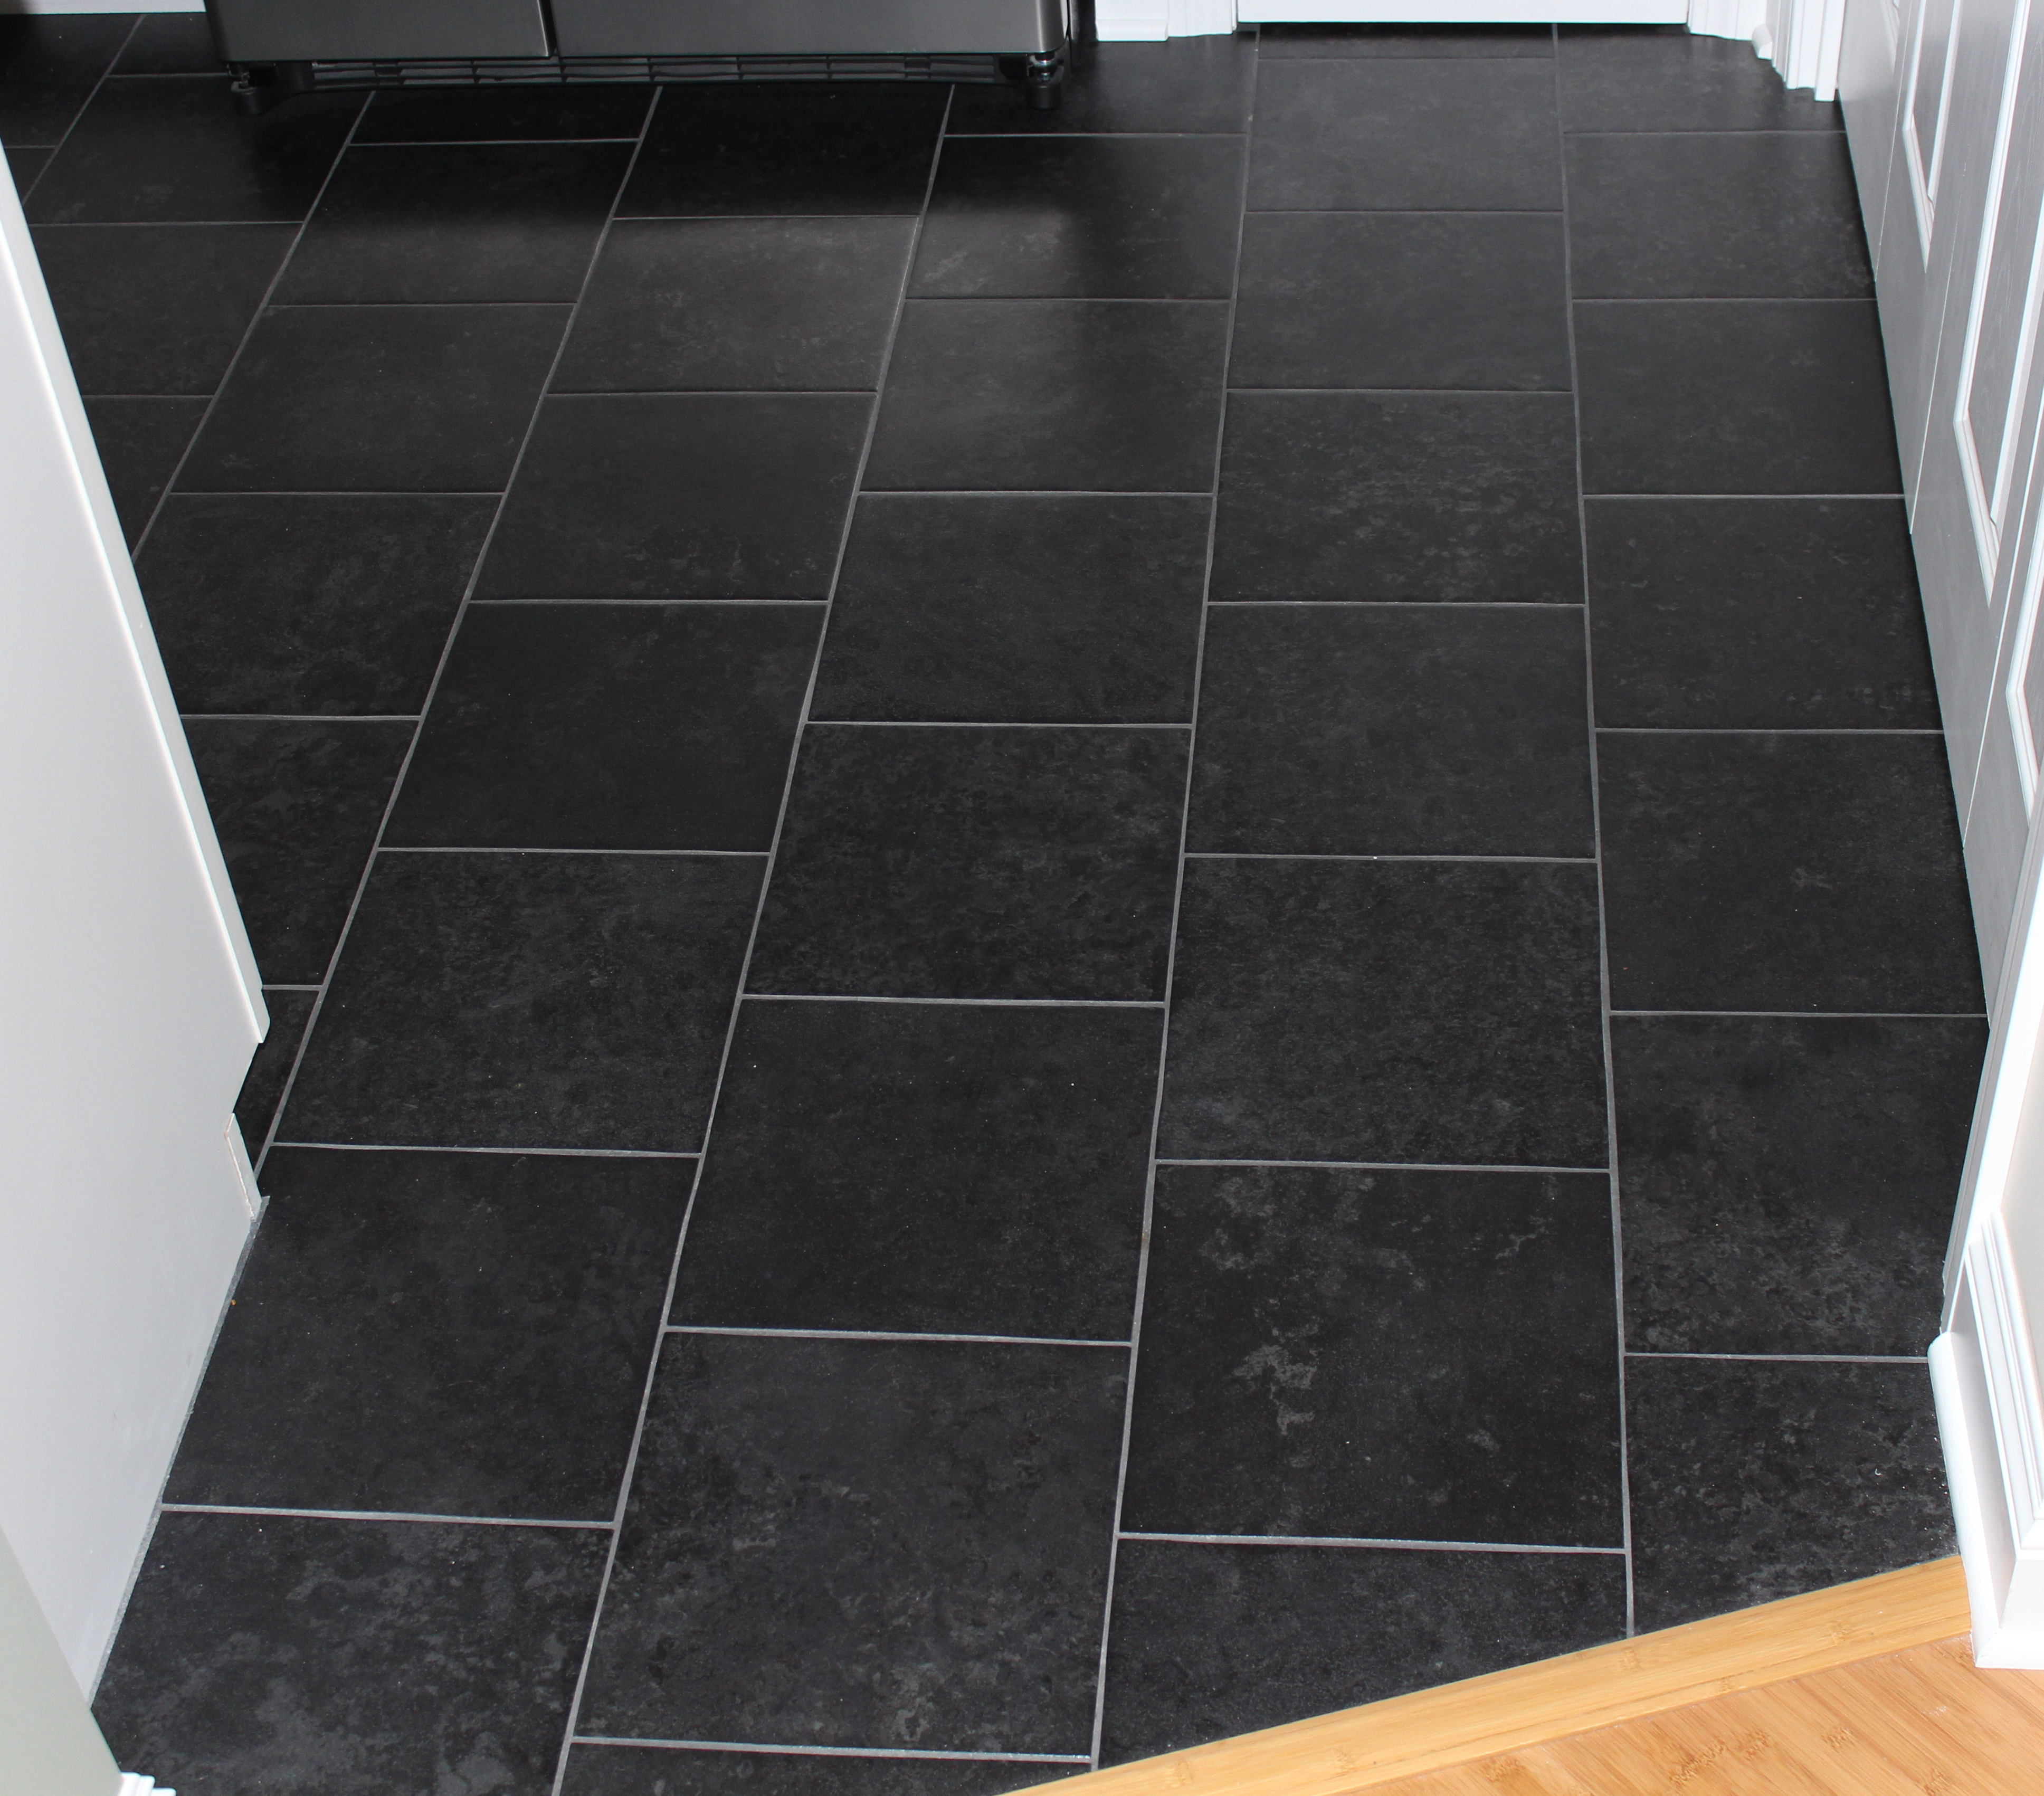 Porcelain Tiles For Kitchen Floors Black Porcelain Tile Floorjpg